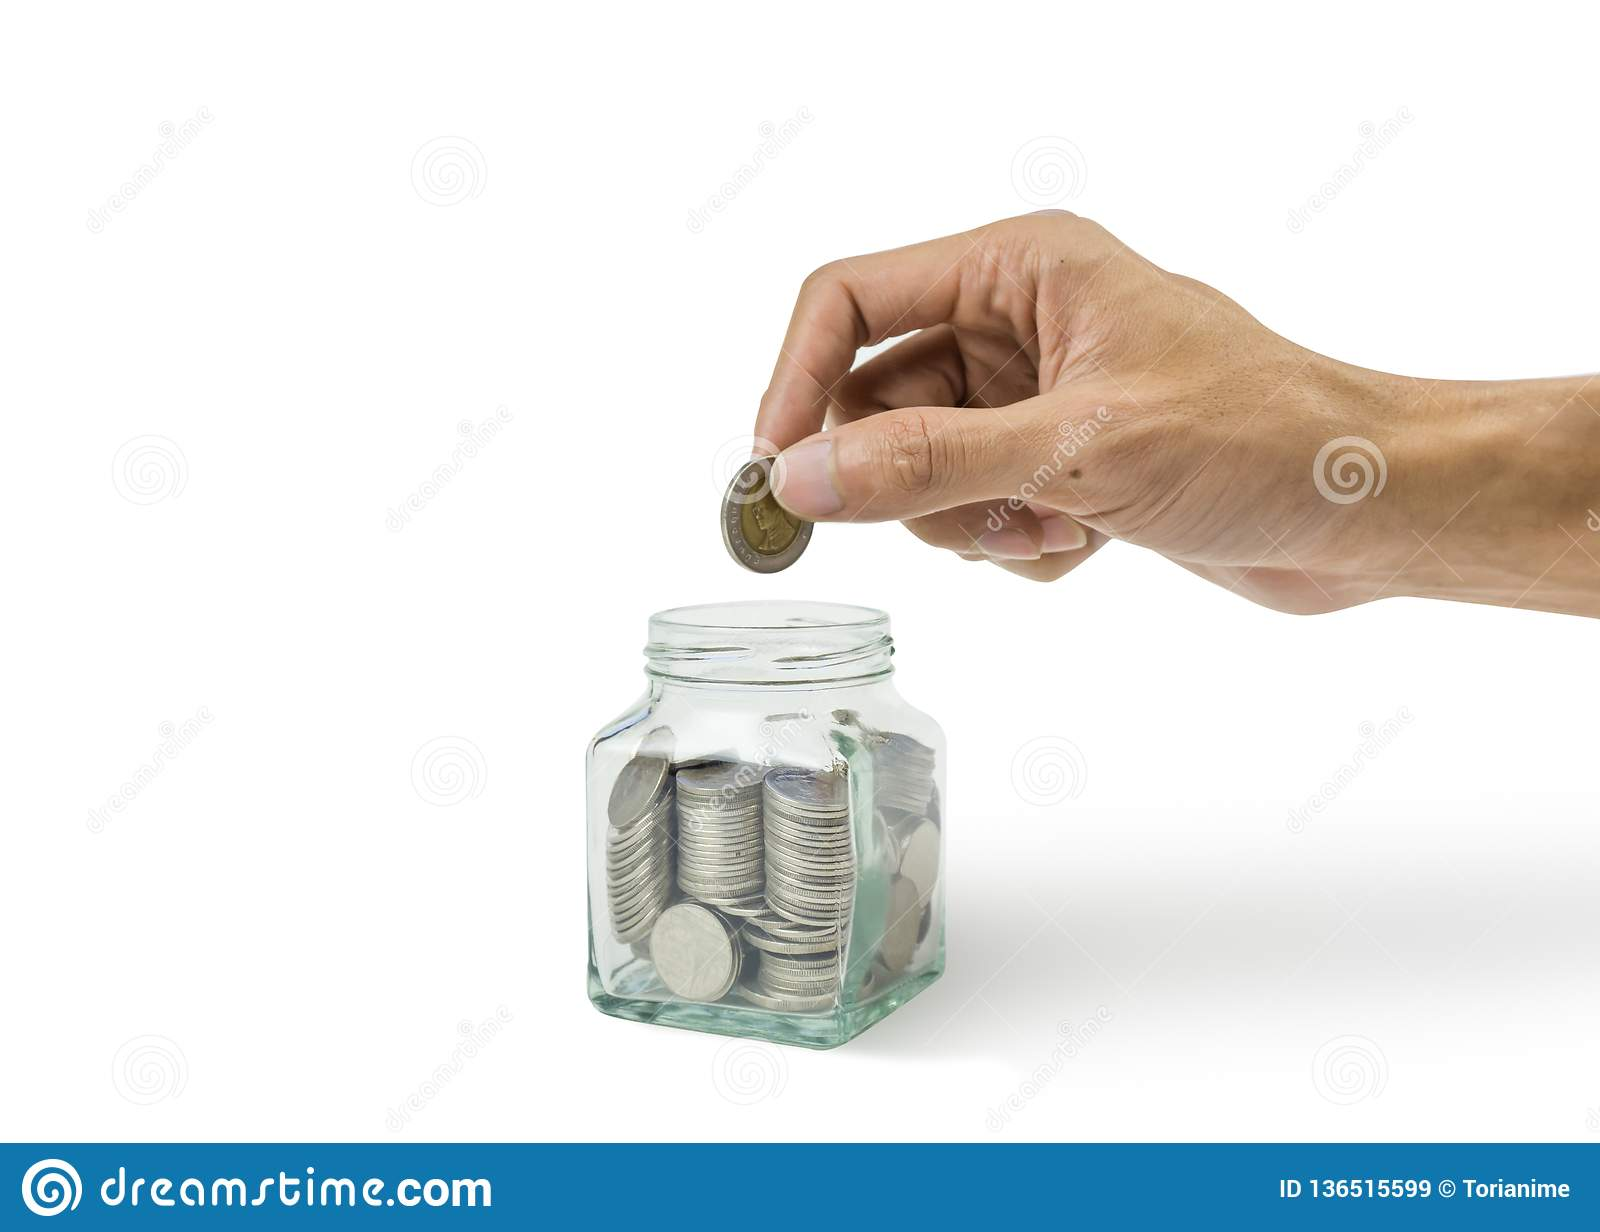 A cropped of man hand holding coin over many coins in glass jar on white background